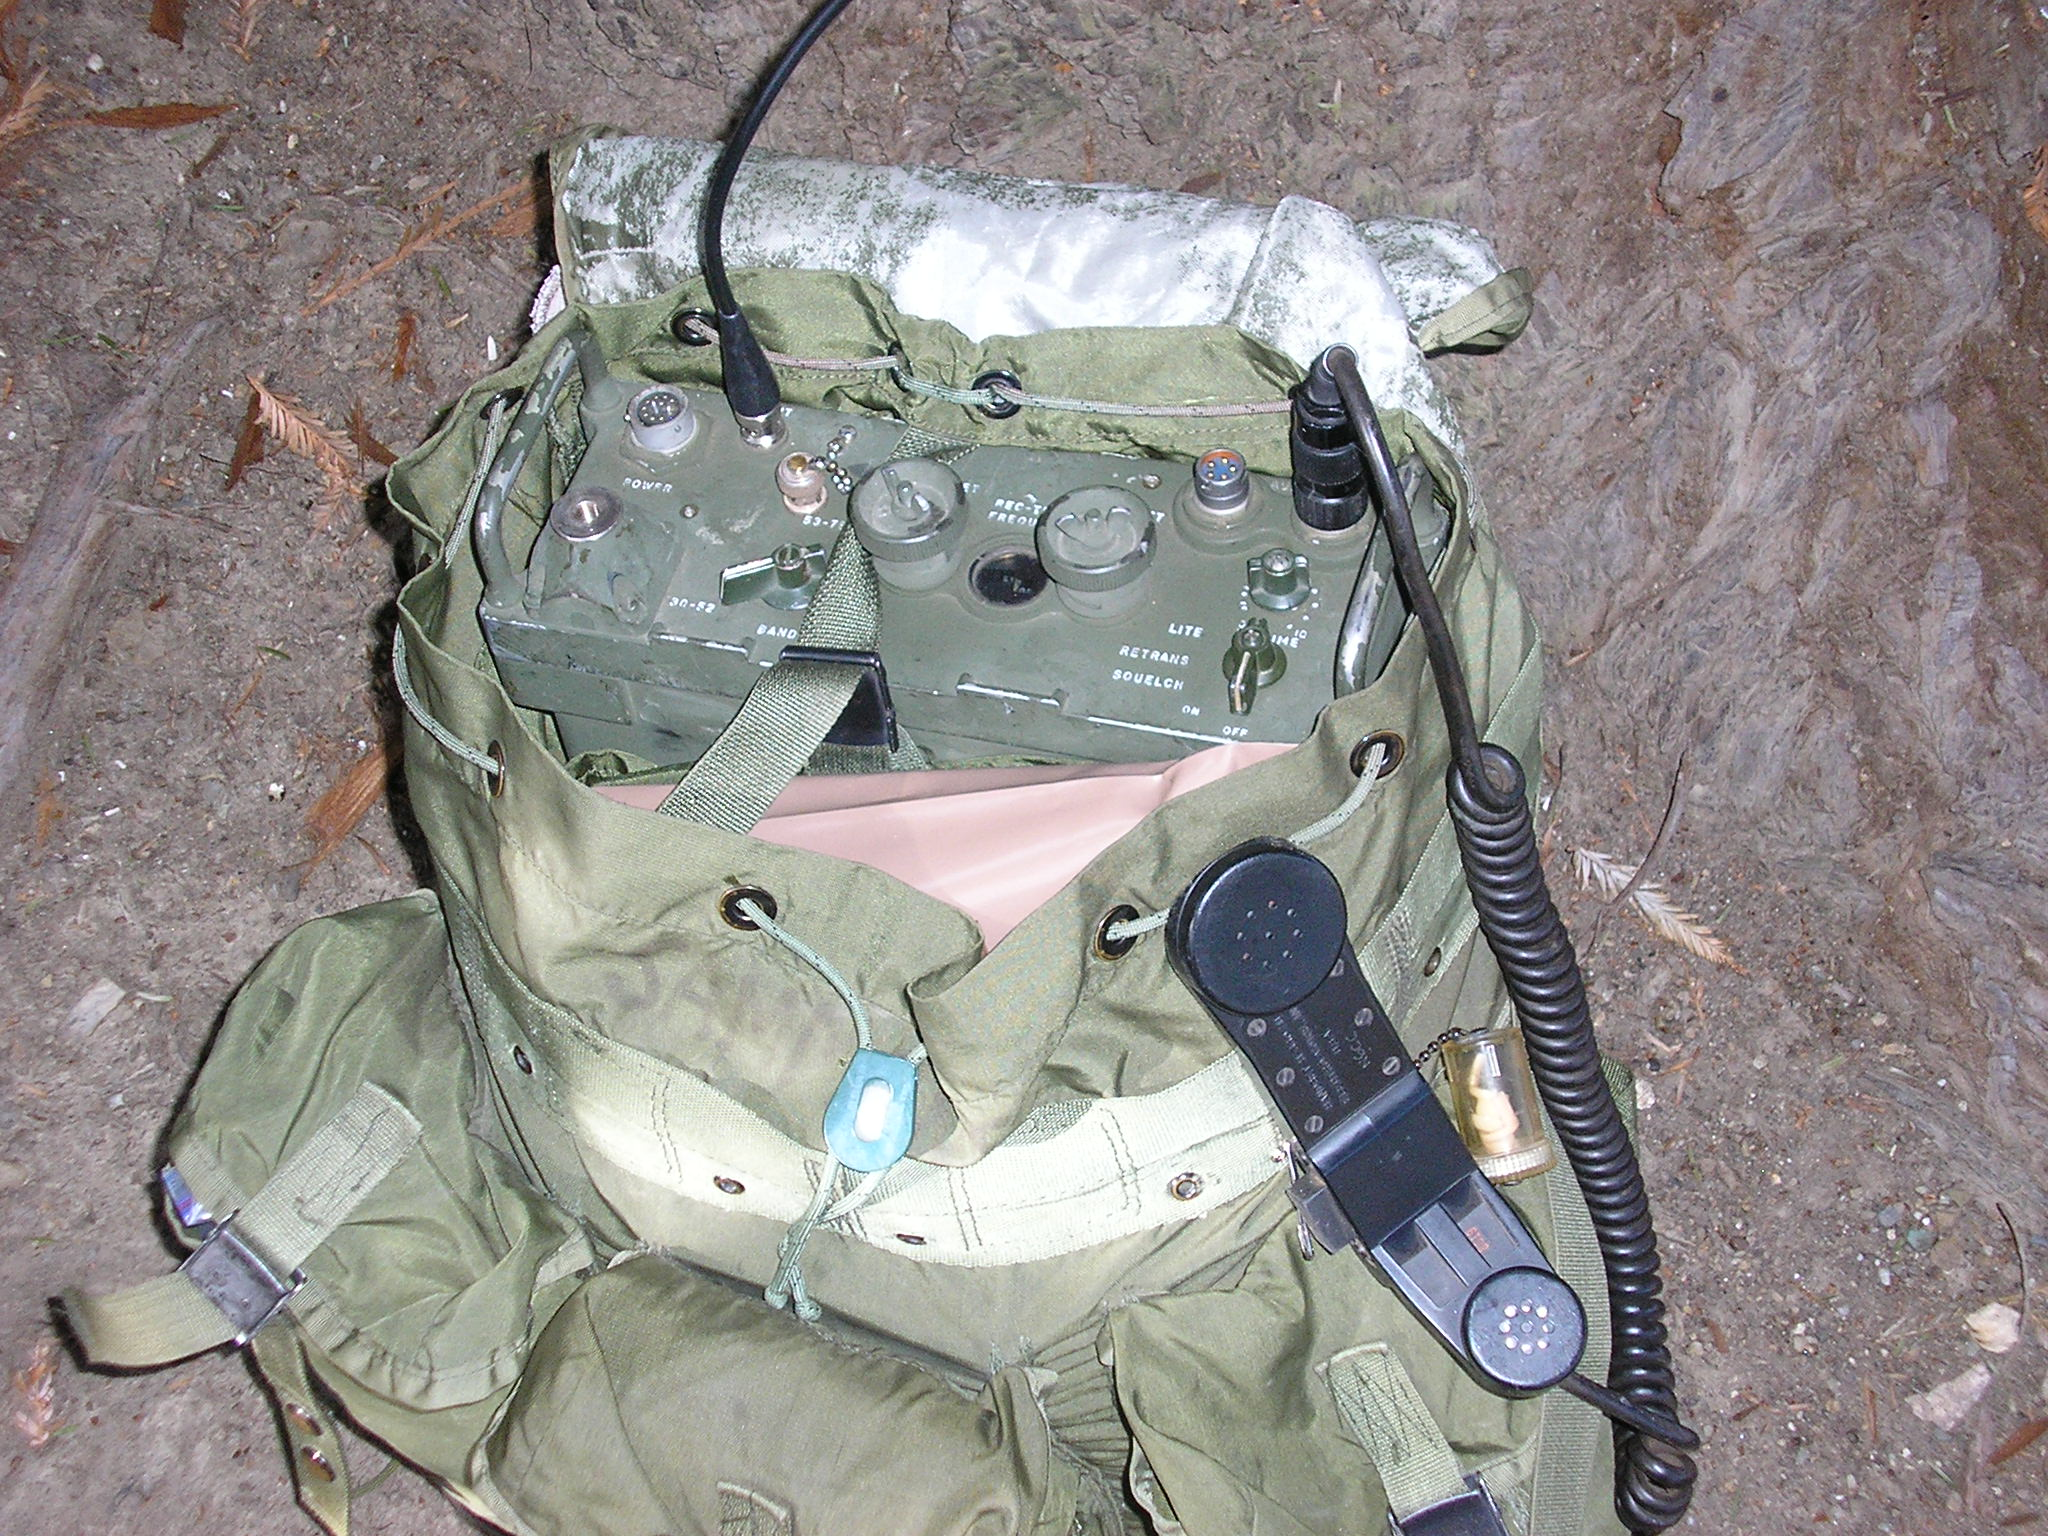 PRC-25 carried in an ALICE pack